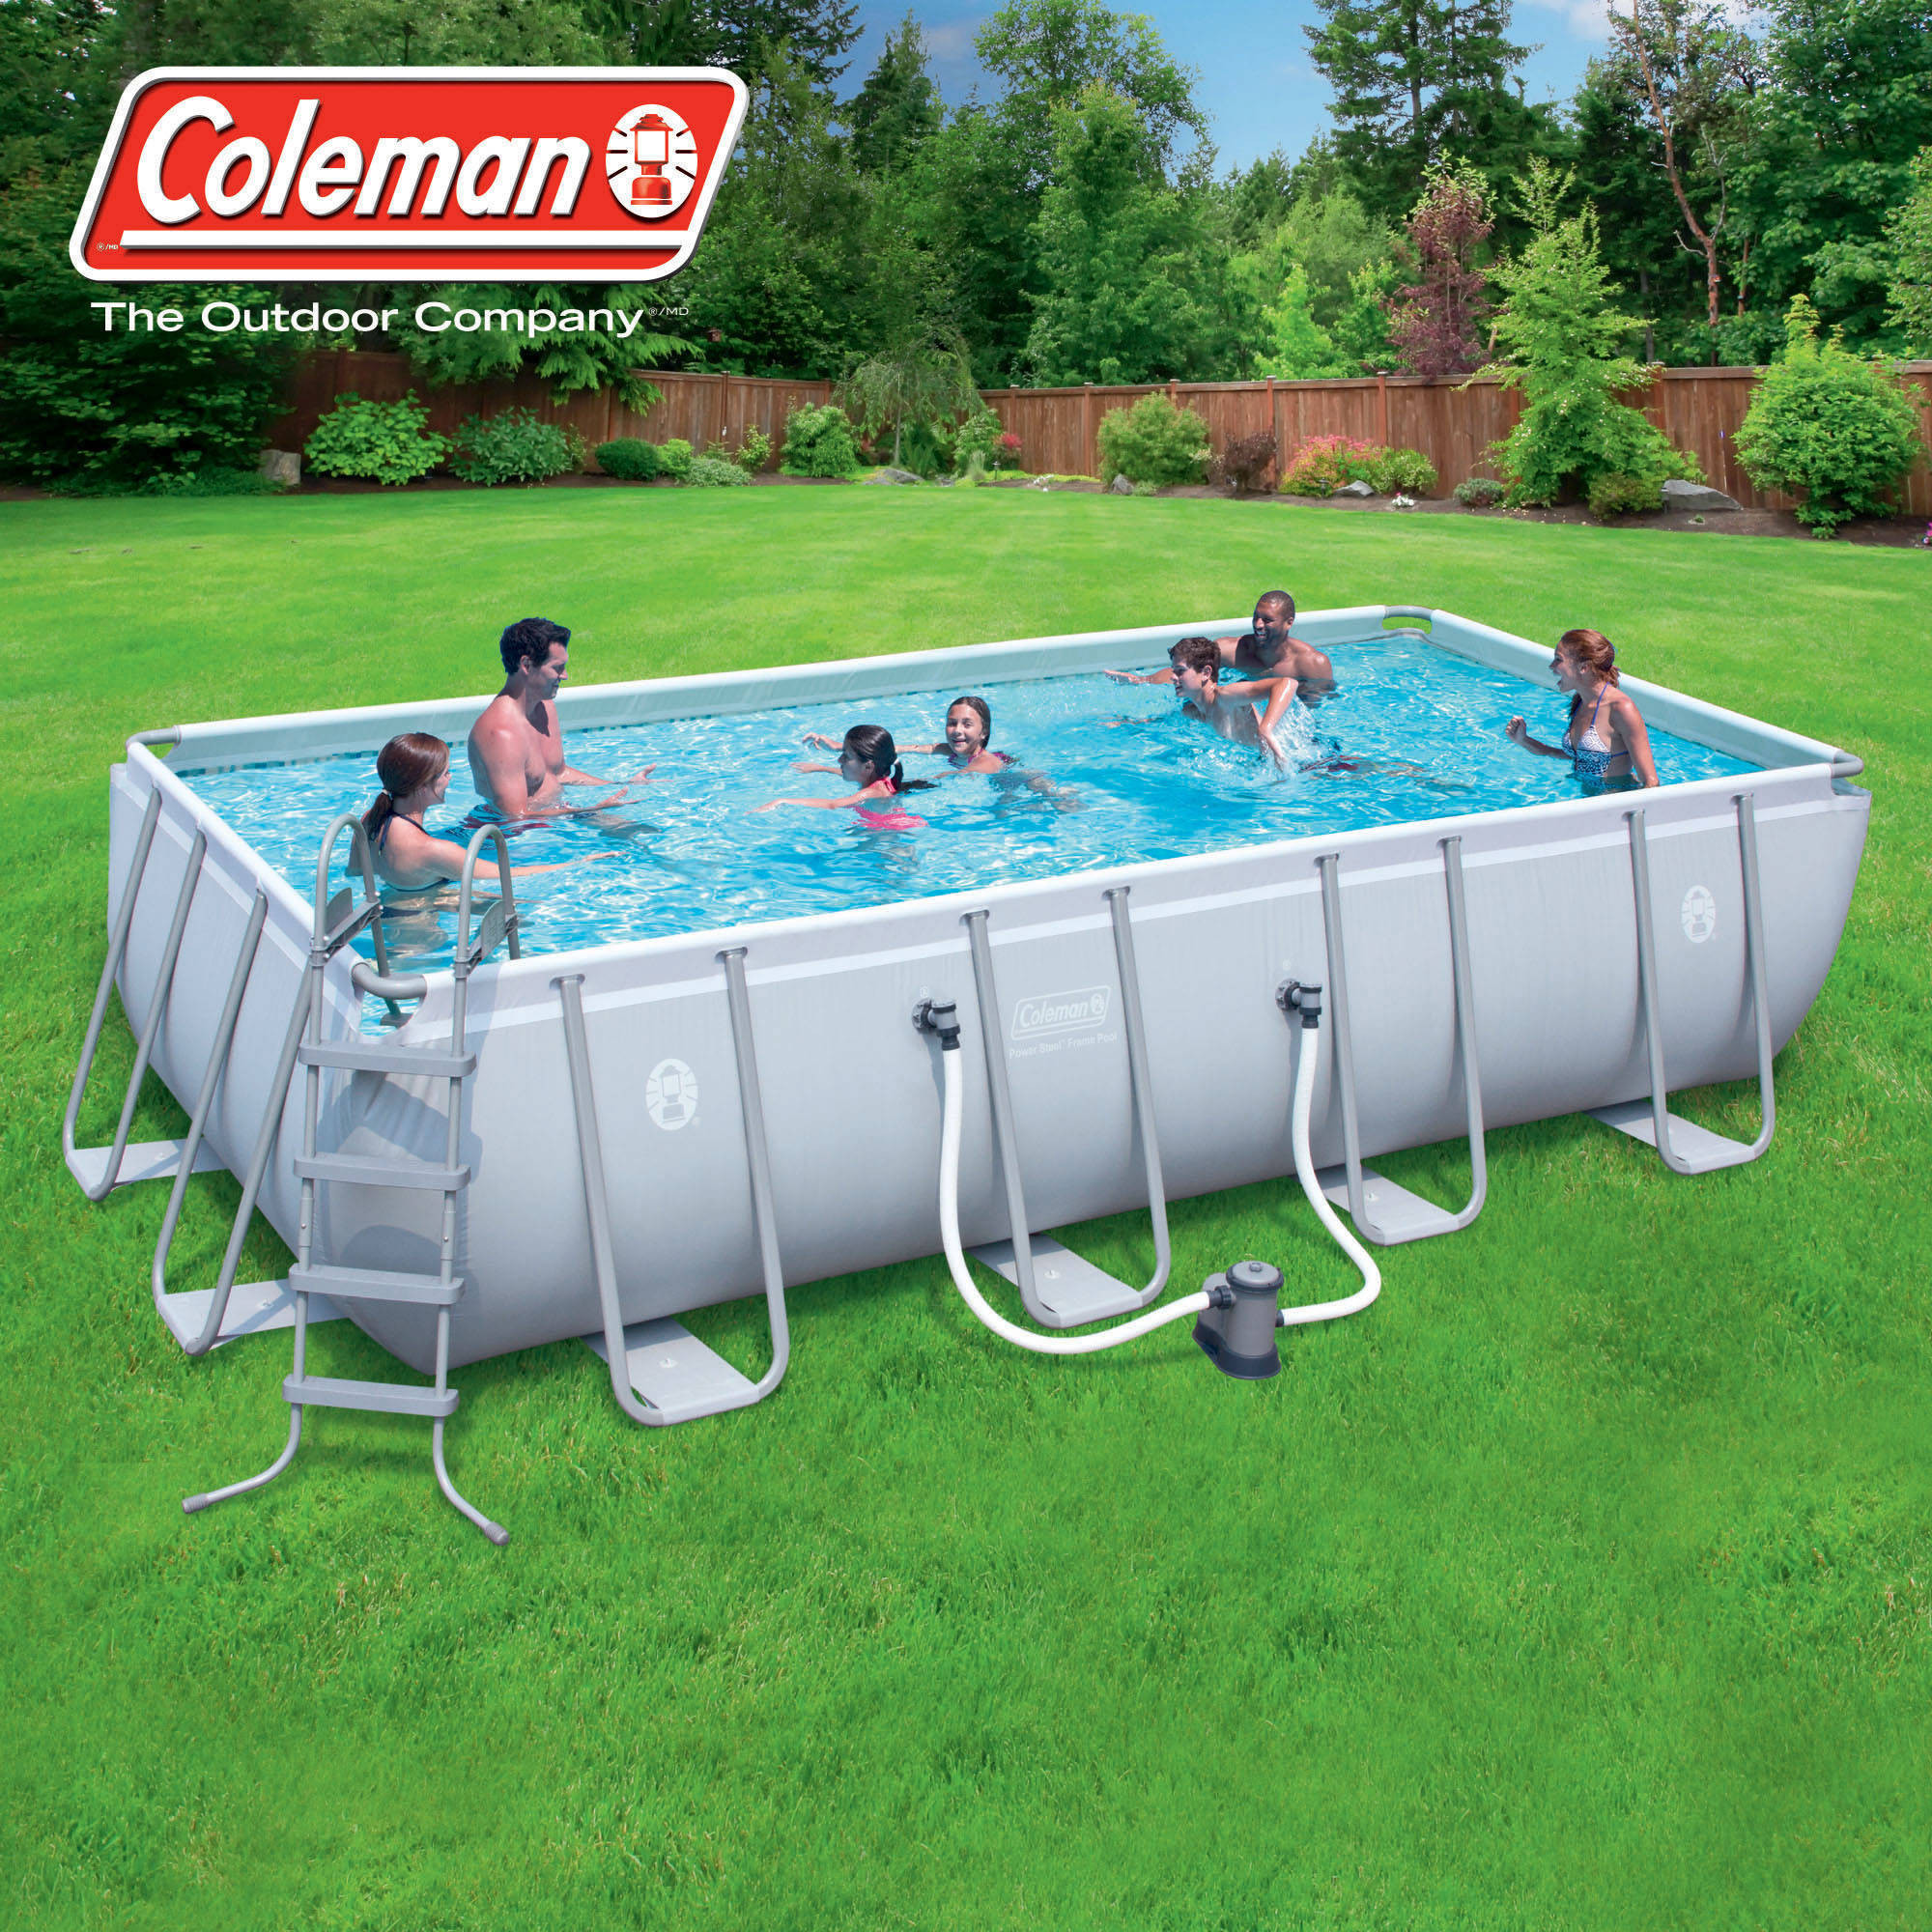 """Best ideas about Coleman Above Ground Pool . Save or Pin Coleman 18 x 9 x 48"""" Power Steel Rectangular Frame Now."""